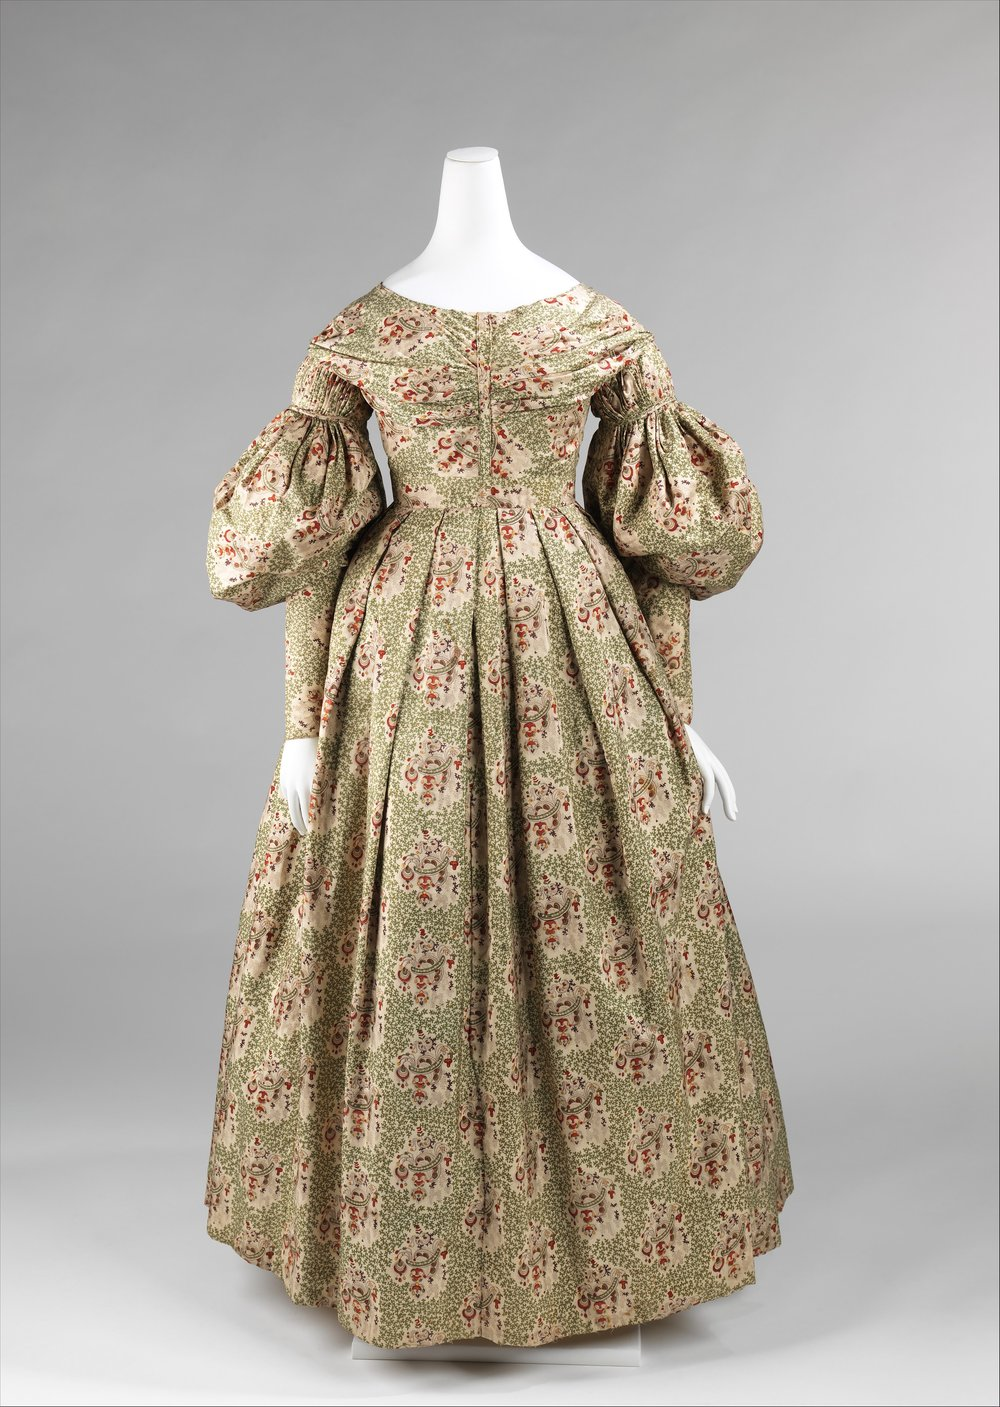 1830s Afternoon Dress | The Met Museum